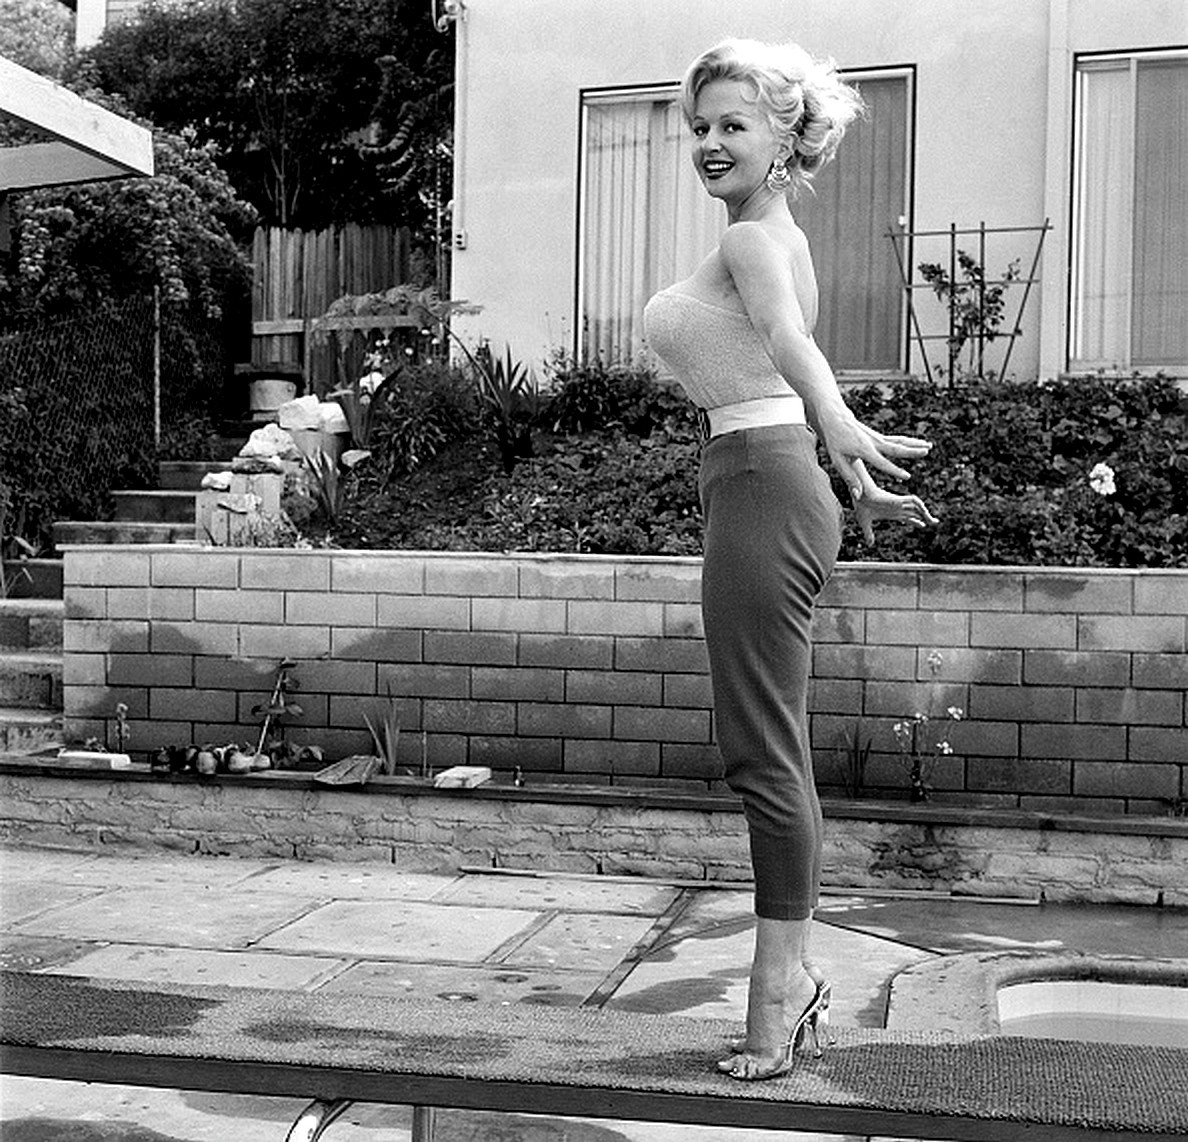 Greta Thyssen in the 1950s and 1960s (25).jpg